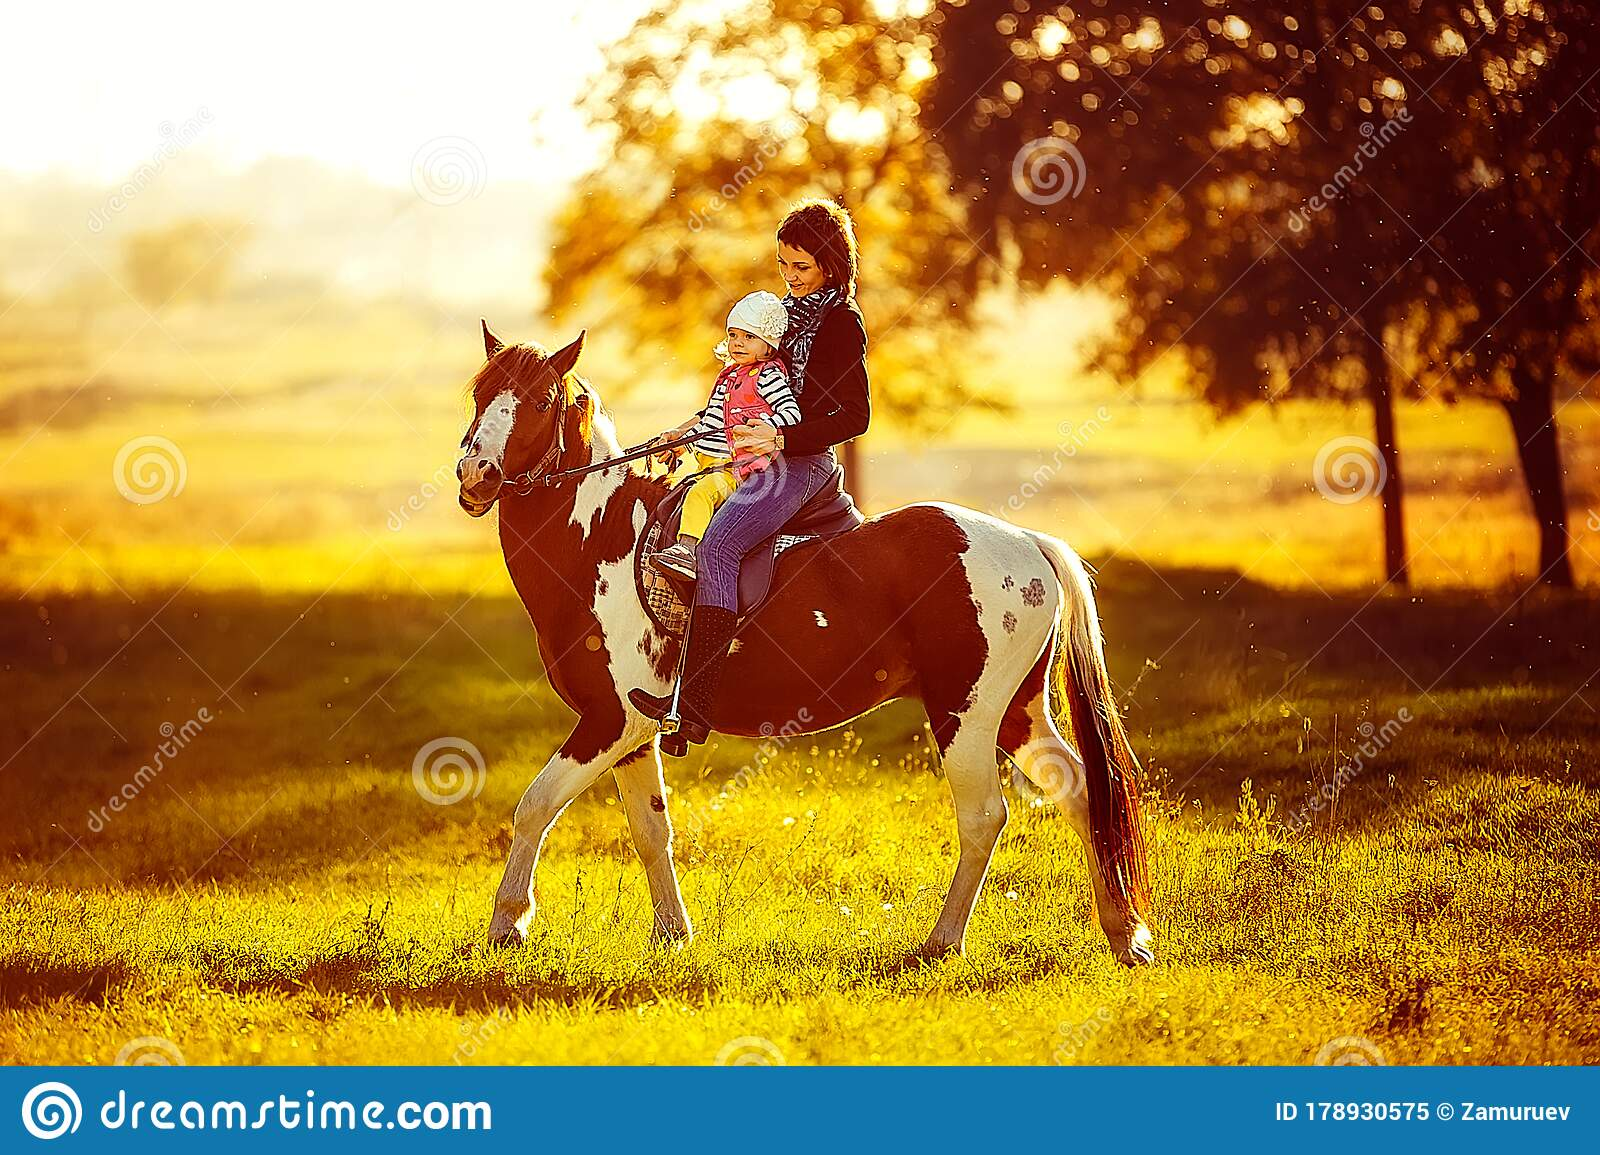 Mother And Daughter Riding A Horse Stock Image Image Of Ride Country 178930575